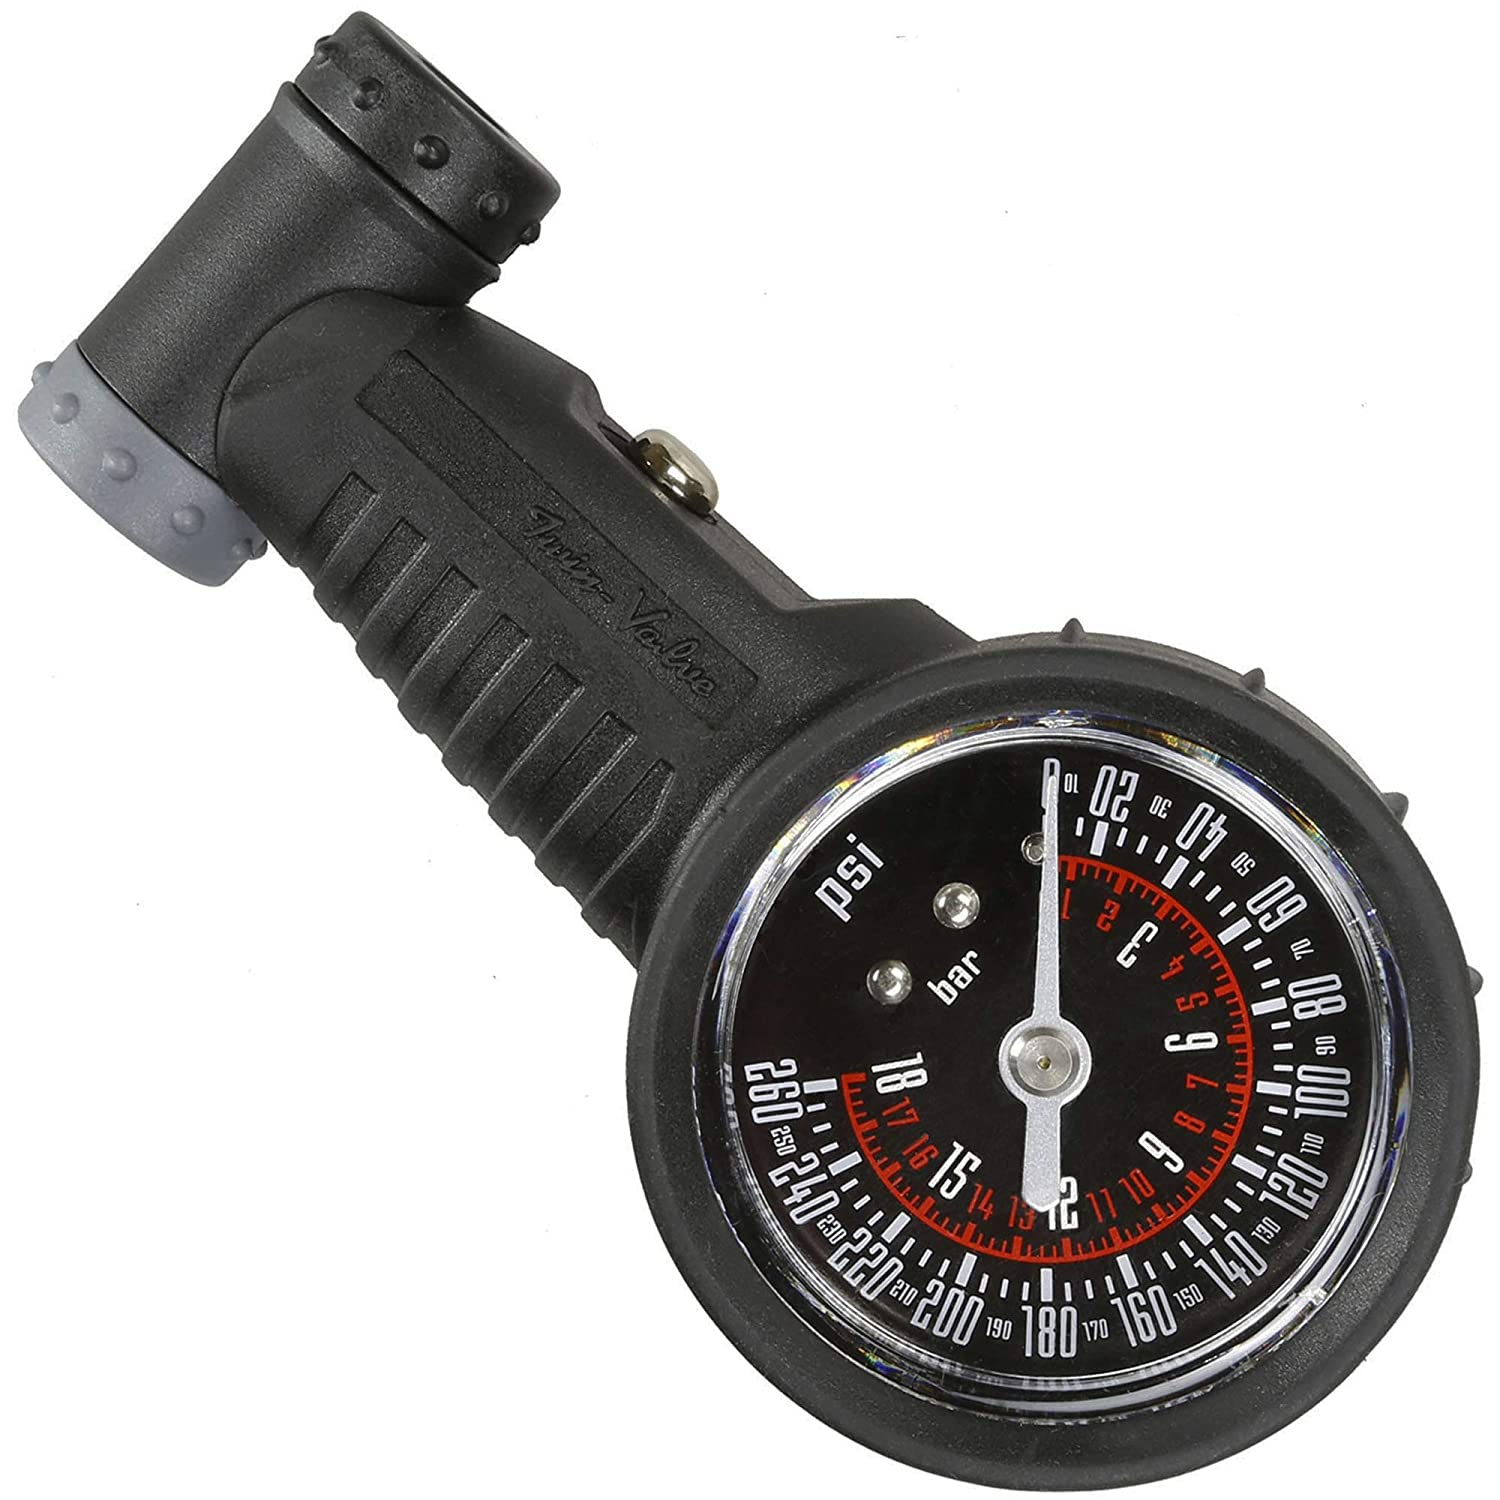 Venzo Bicycle Accurate Air Tire Pressure Gauge Optional High or Low Pressure Presta Schrader PSI or Bar Single or Dual Face Great for Bike Car Truck Motorcycle /& Suspension Shock